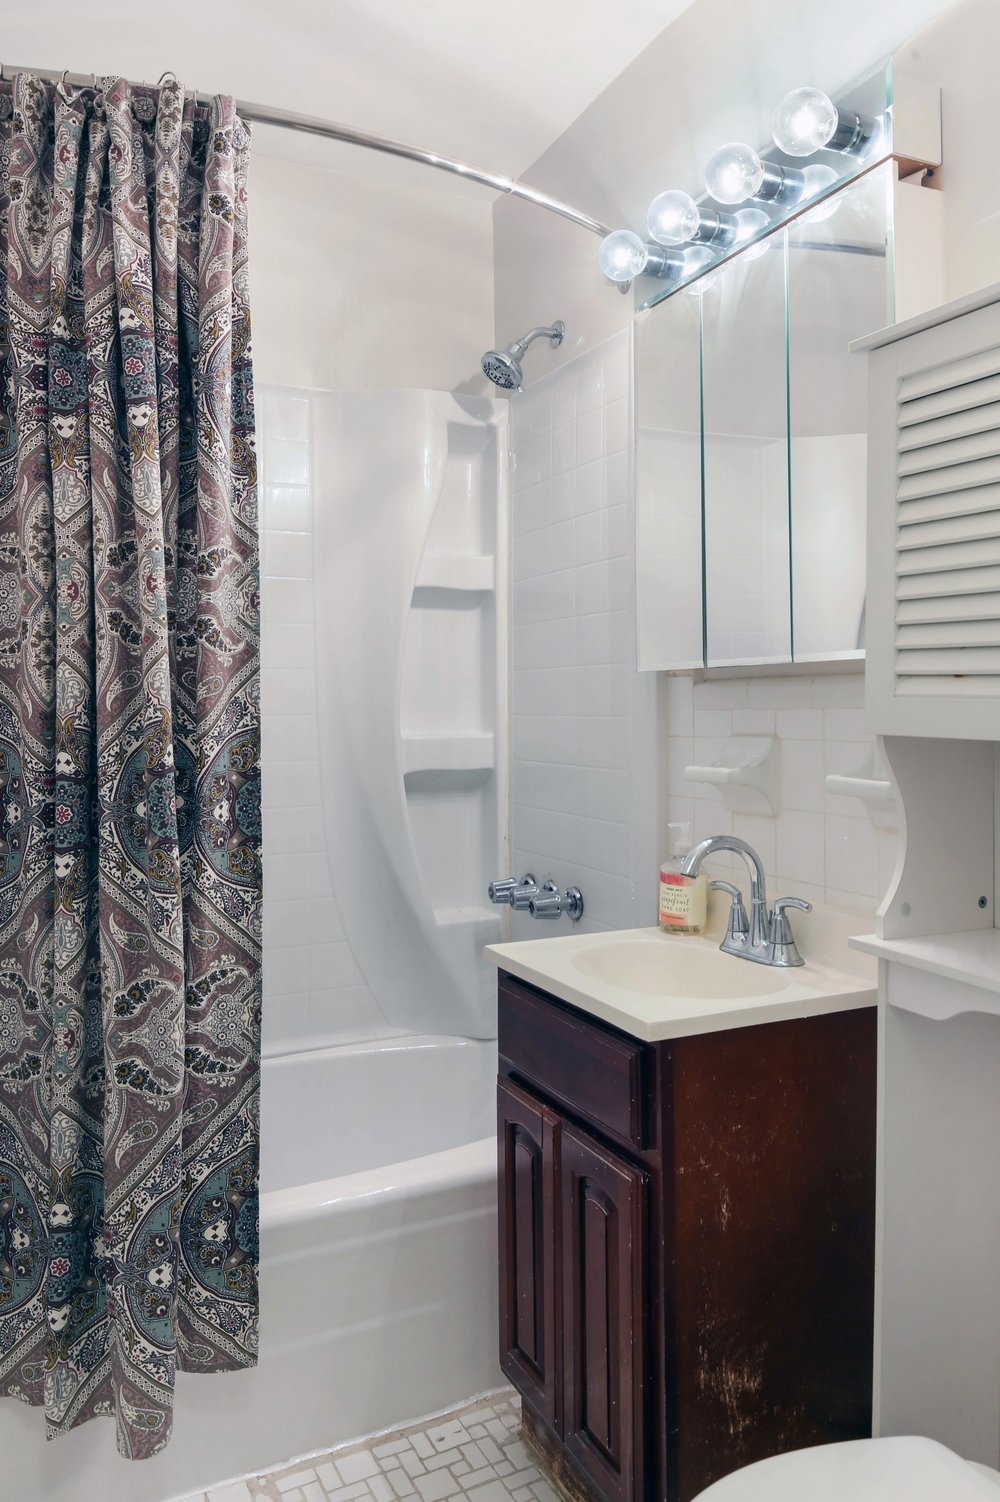 7_599East7thStreet_1D_8_Bathroom_HiRes.jpg